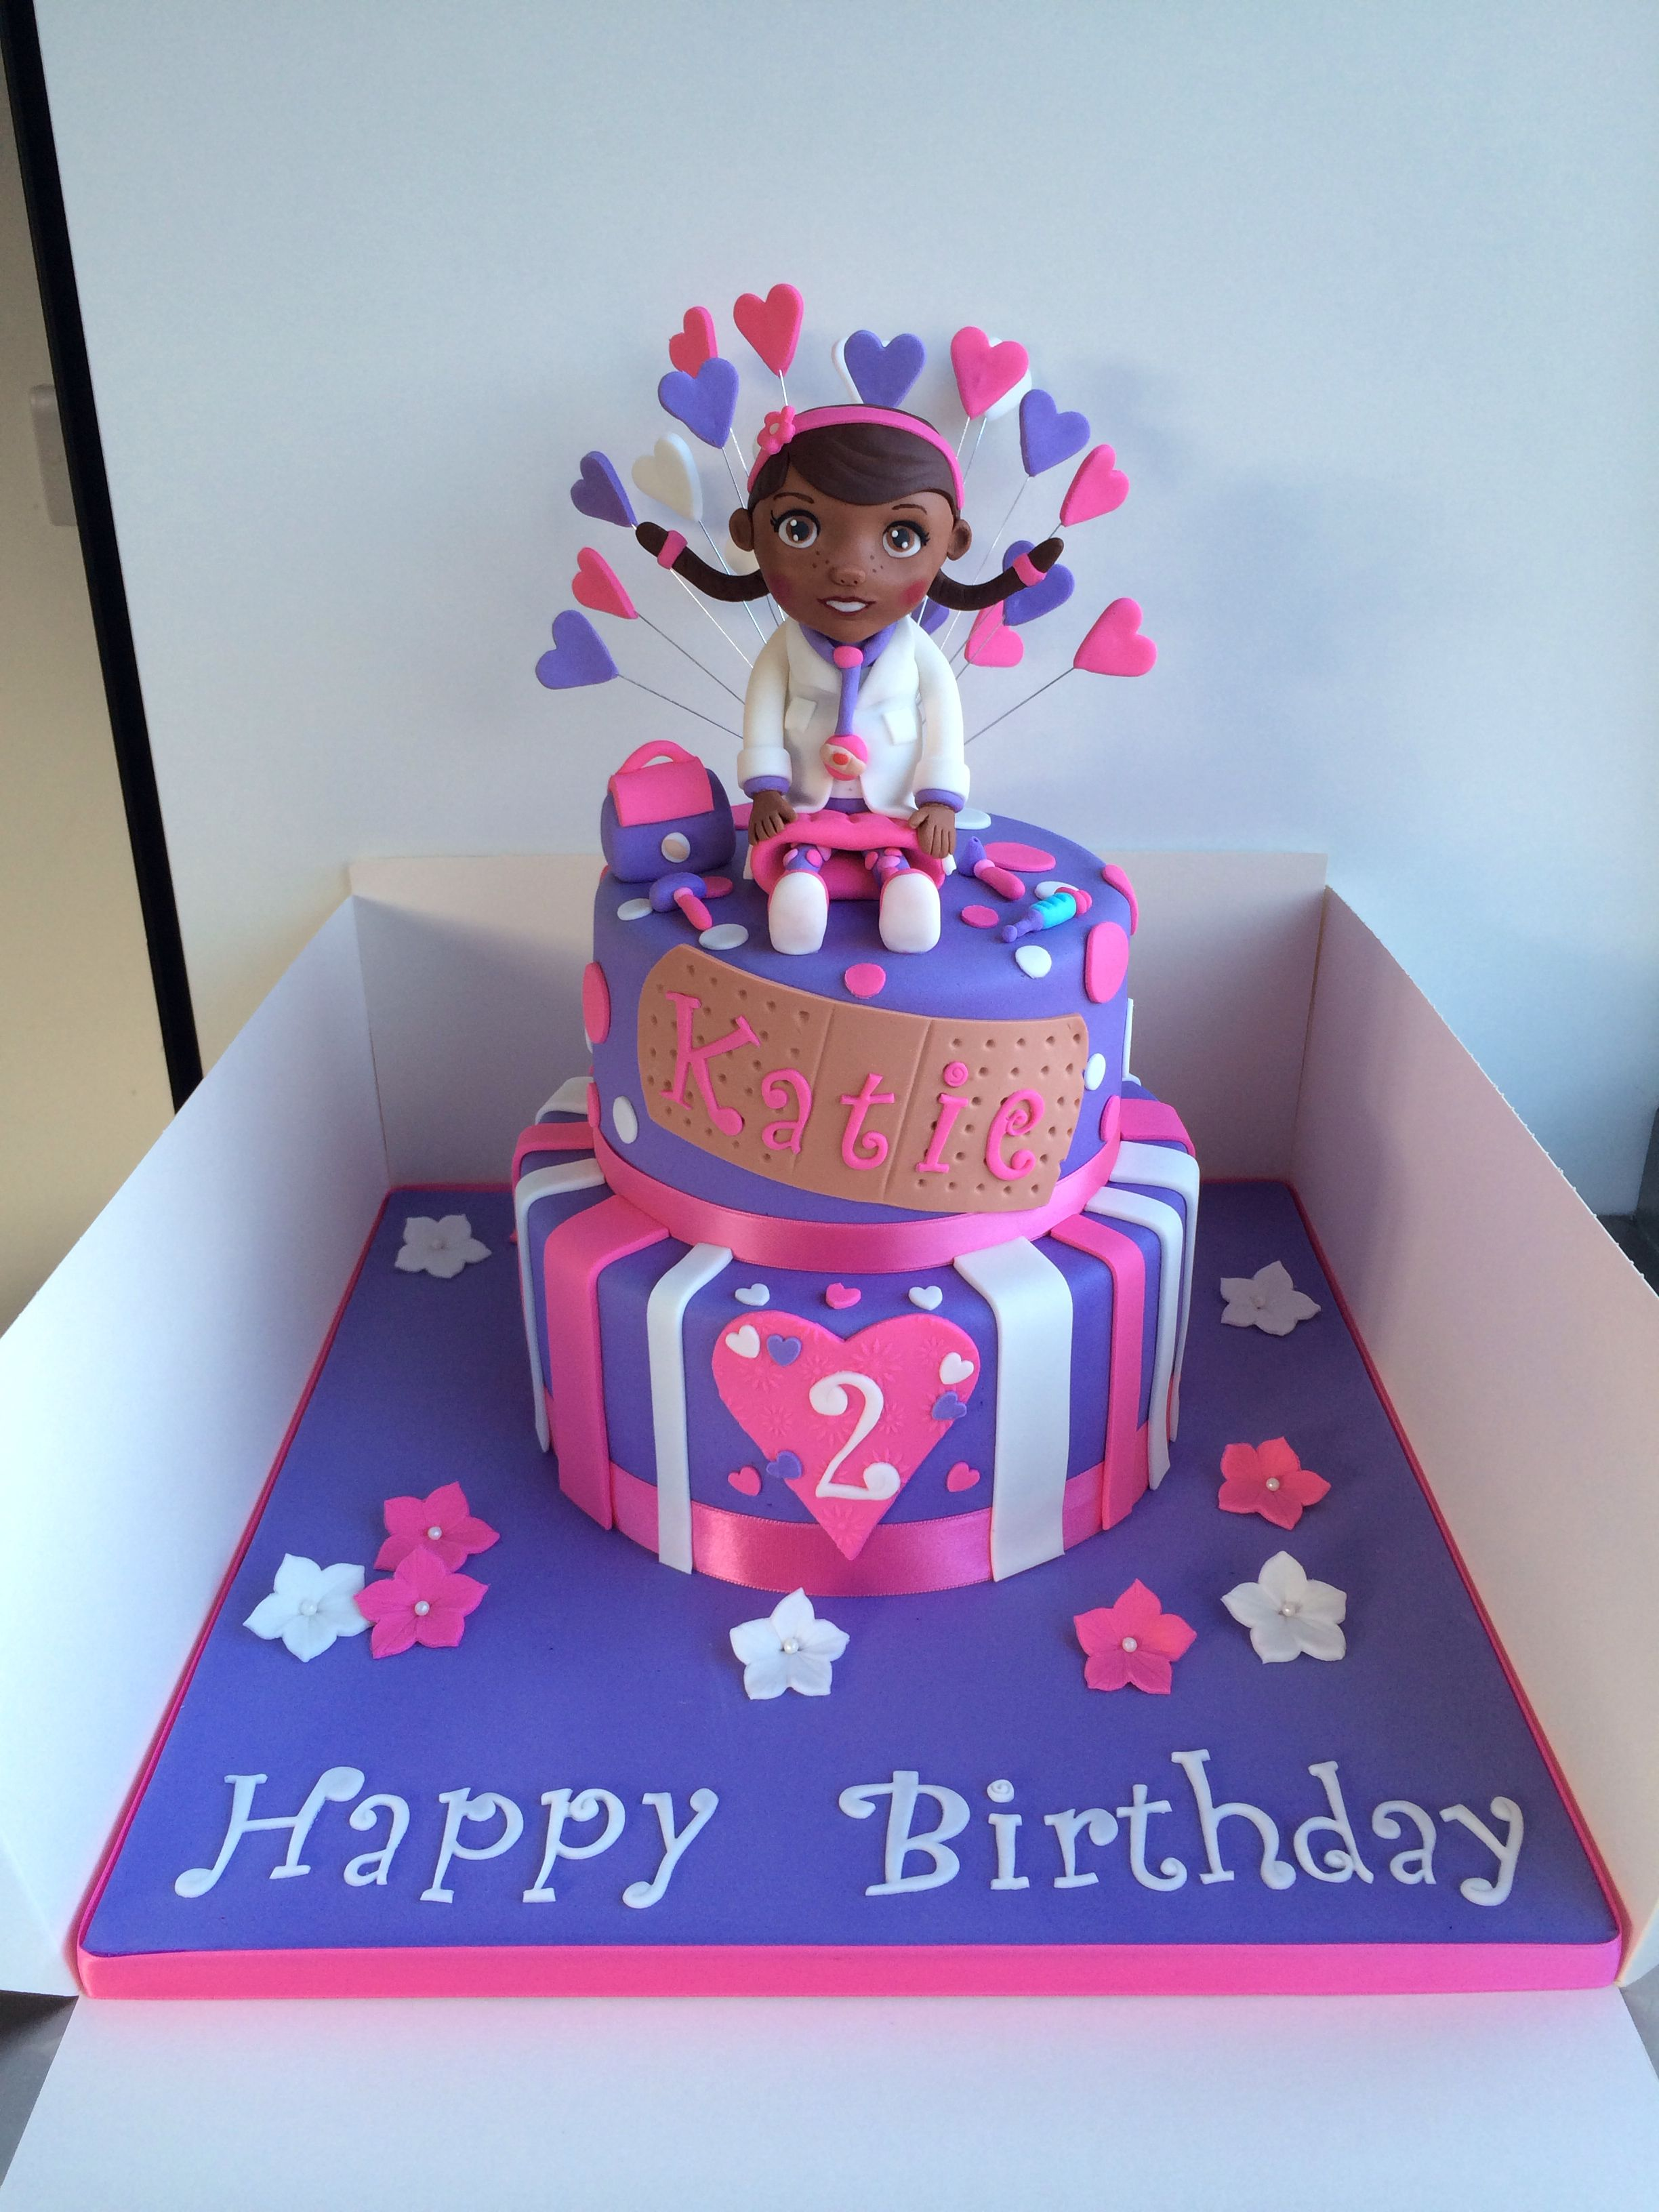 Stupendous Doc Mcstuffins Cake With Hand Modelled Doc With Images Doc Funny Birthday Cards Online Elaedamsfinfo